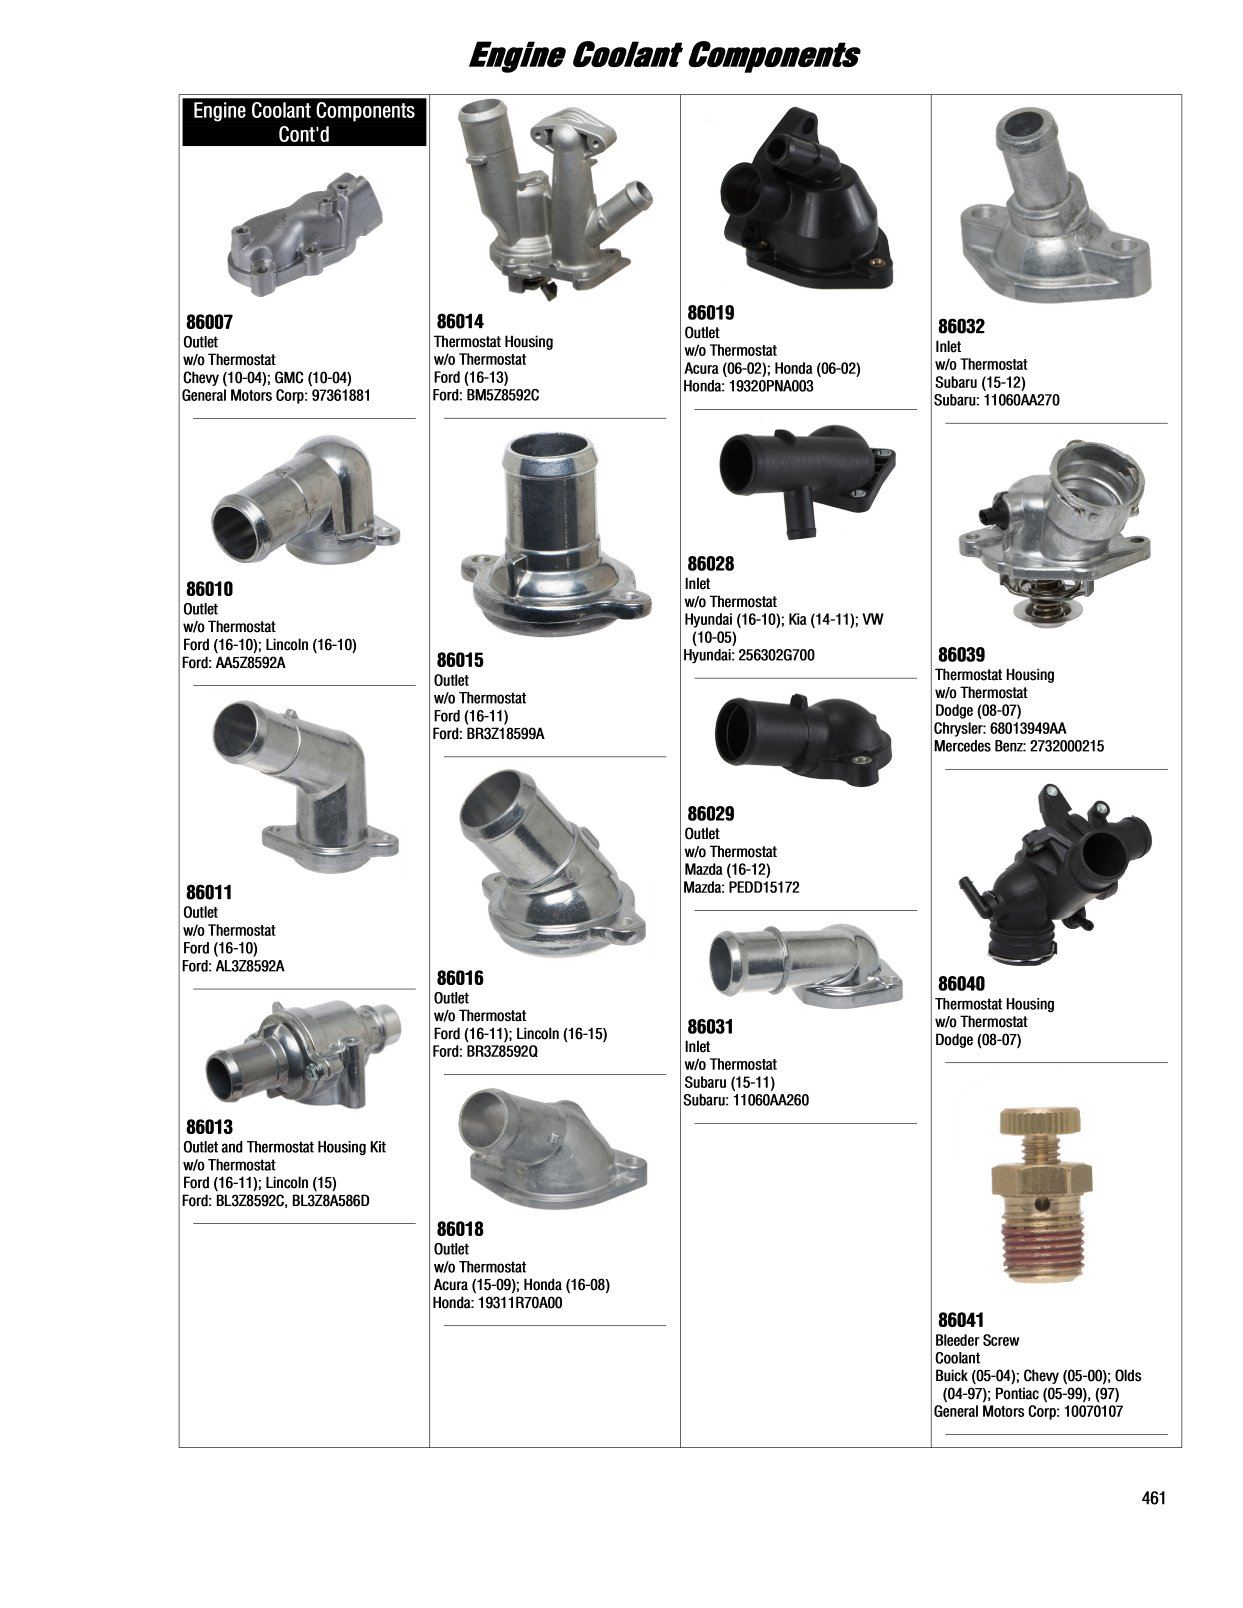 2017 Illustrated Guide Page 461 Engine Coolant Components General